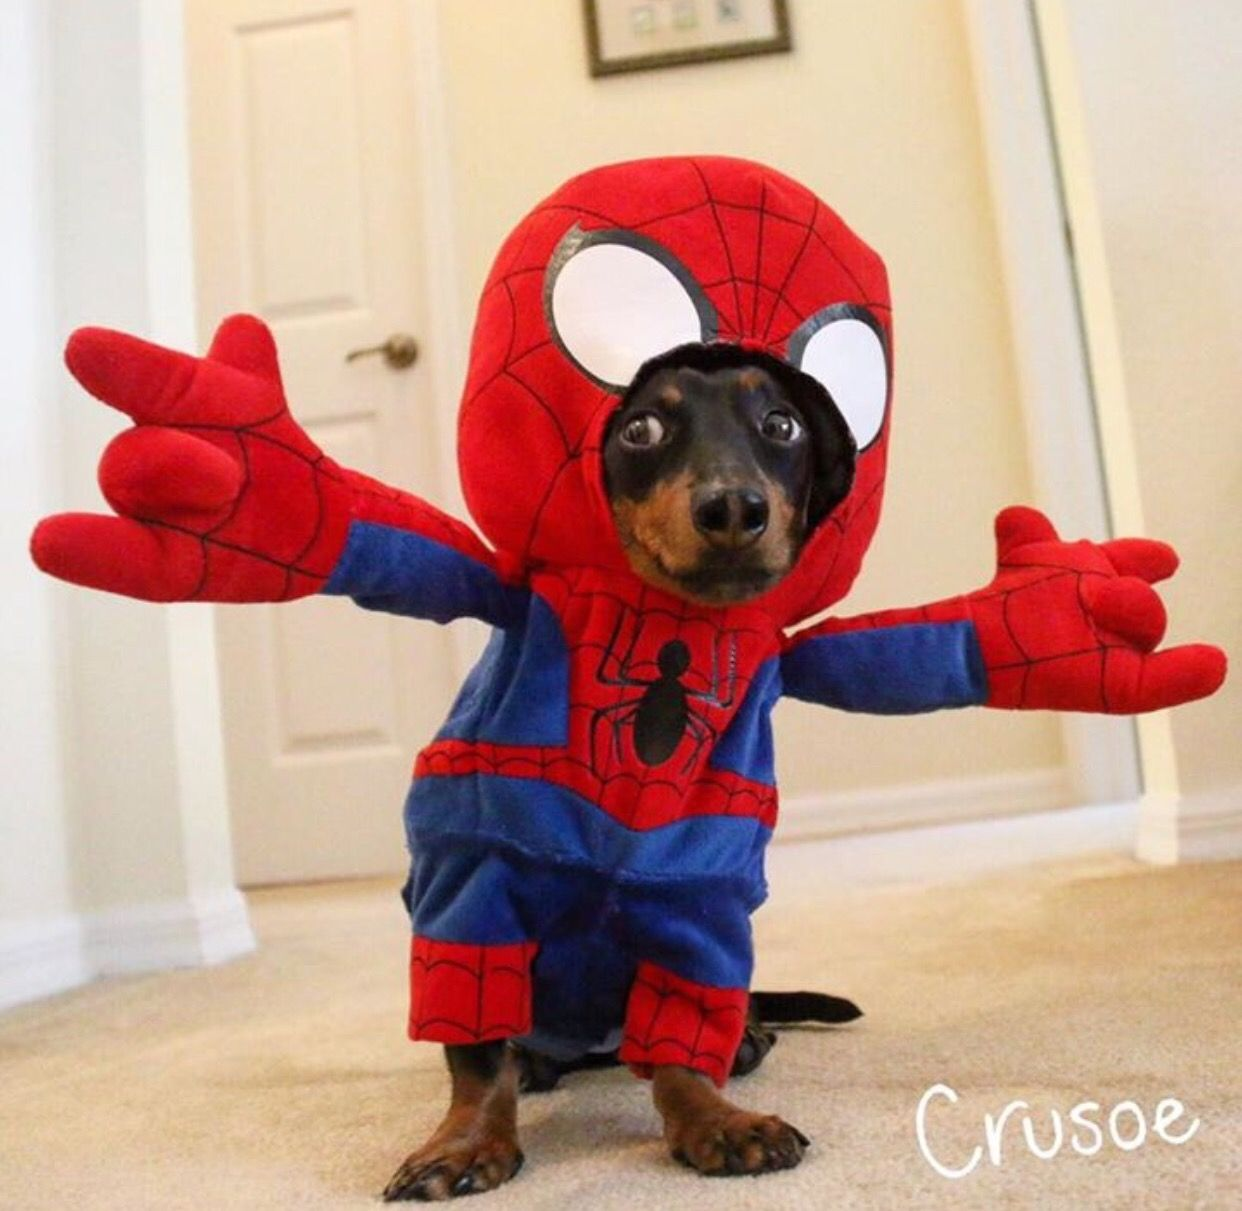 Dog wearing Spider-Man costume | Dogs in Costume & Clothes ...